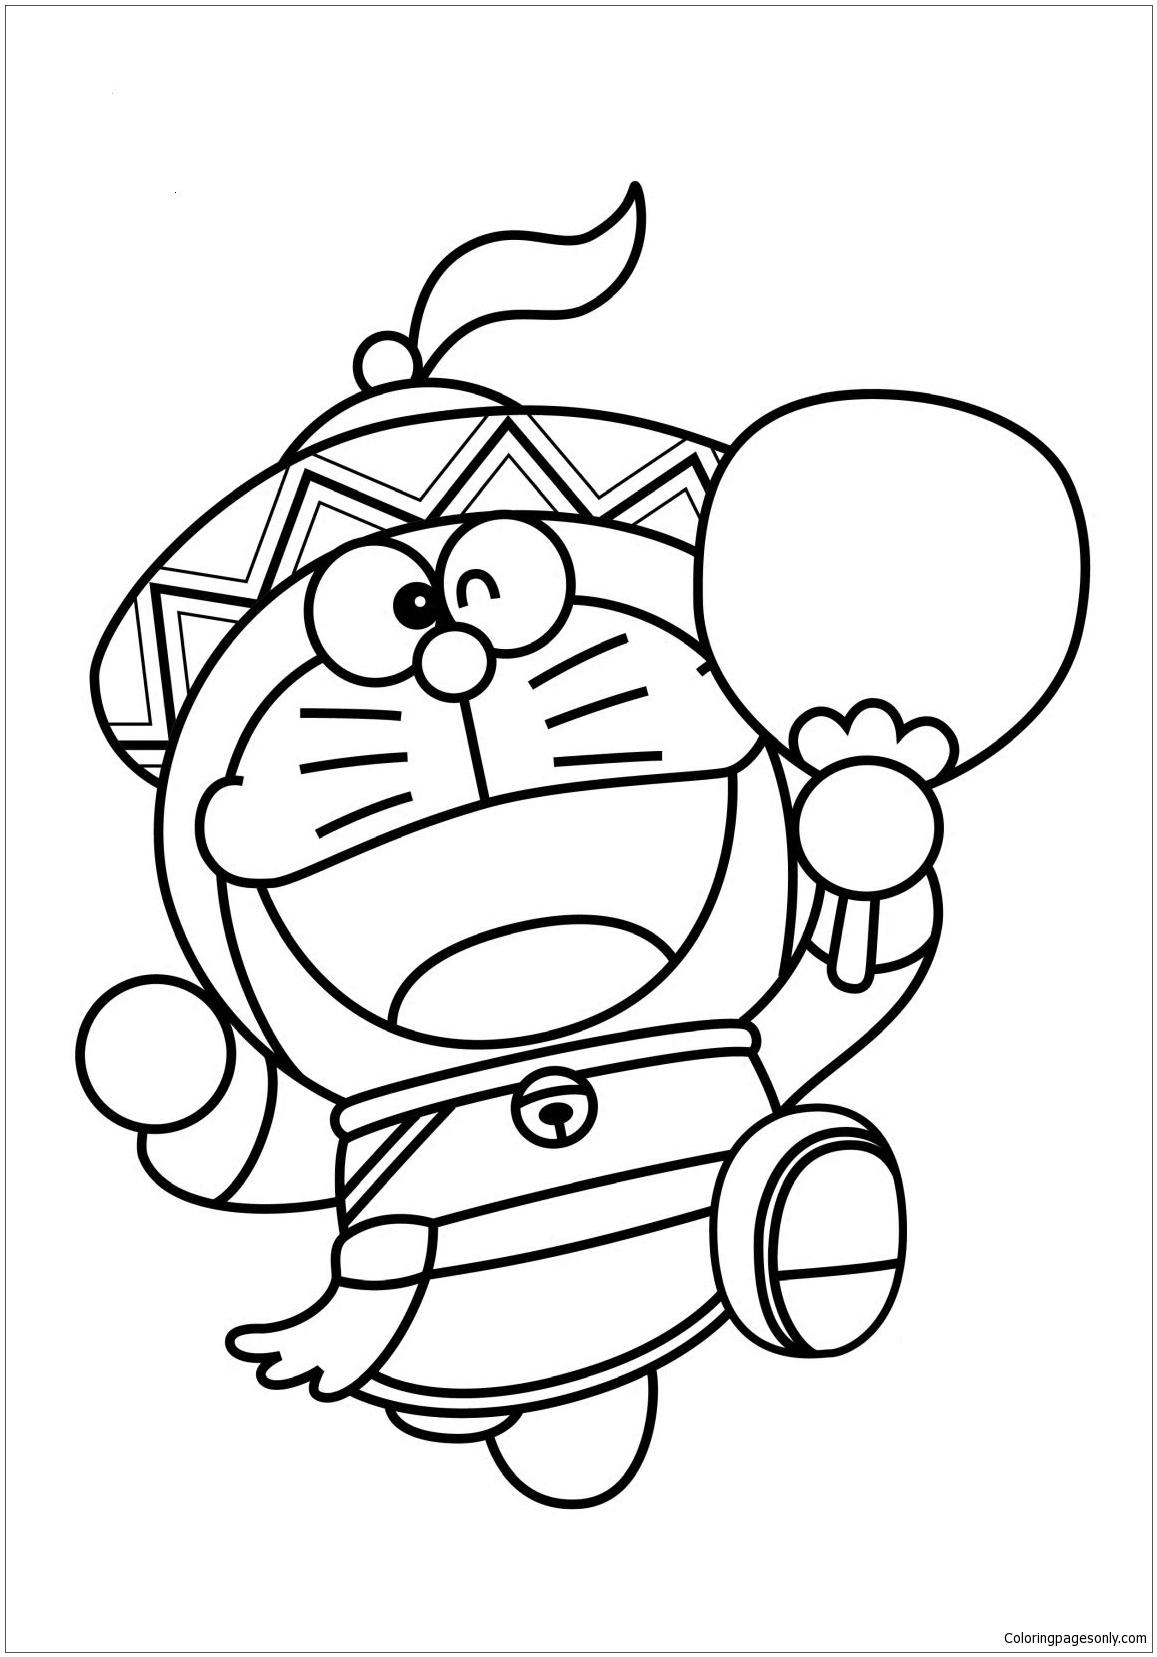 Doraemon As Chinese Coloring Page